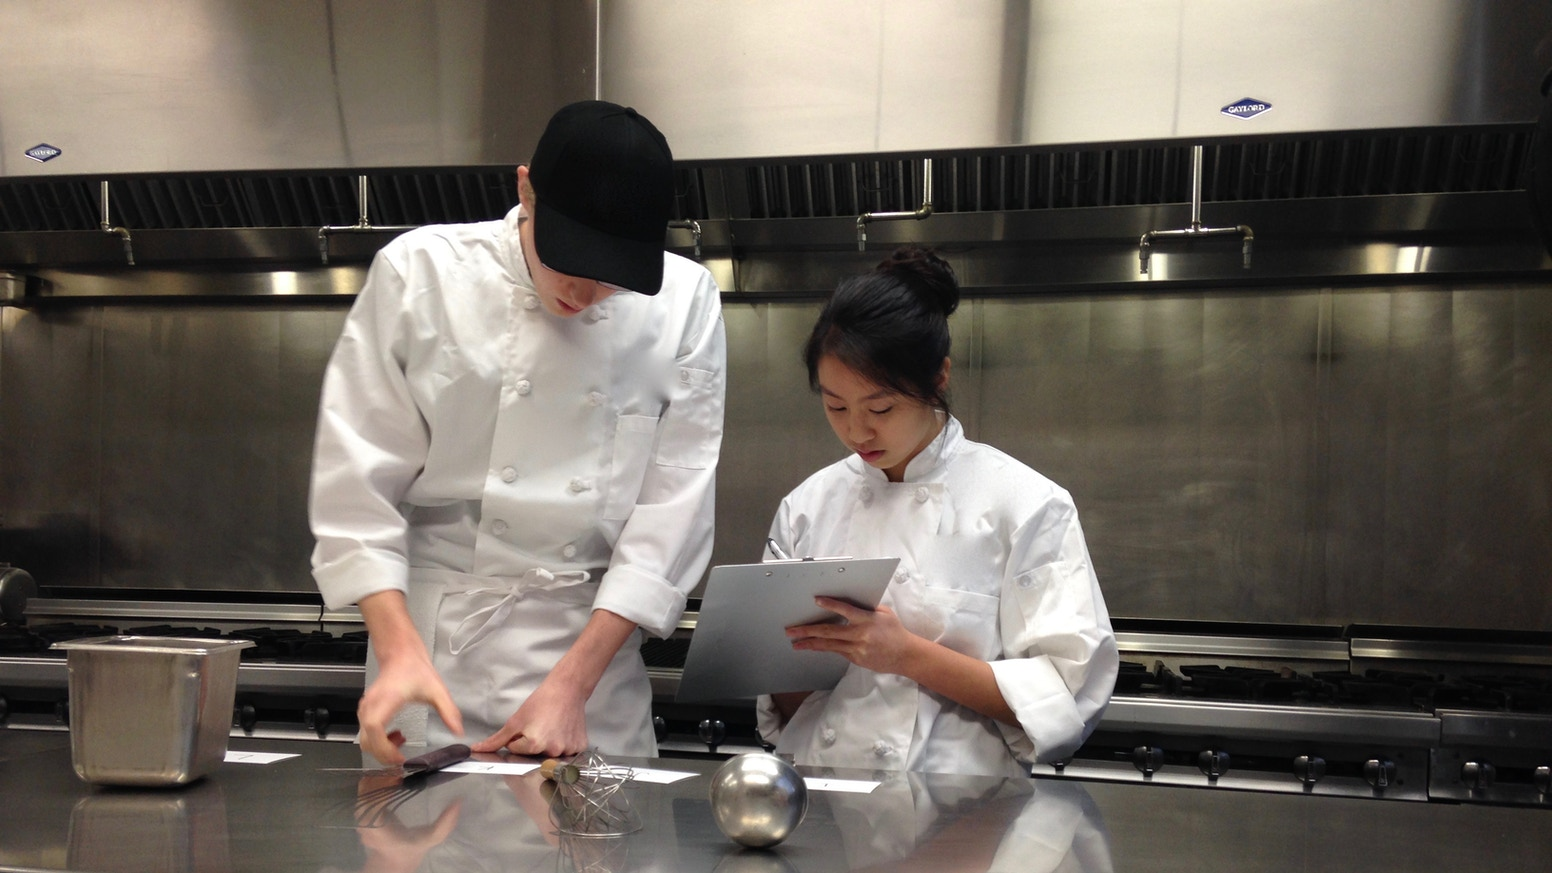 The Portland Kitchen: Support our young chefs by Joy Church ...